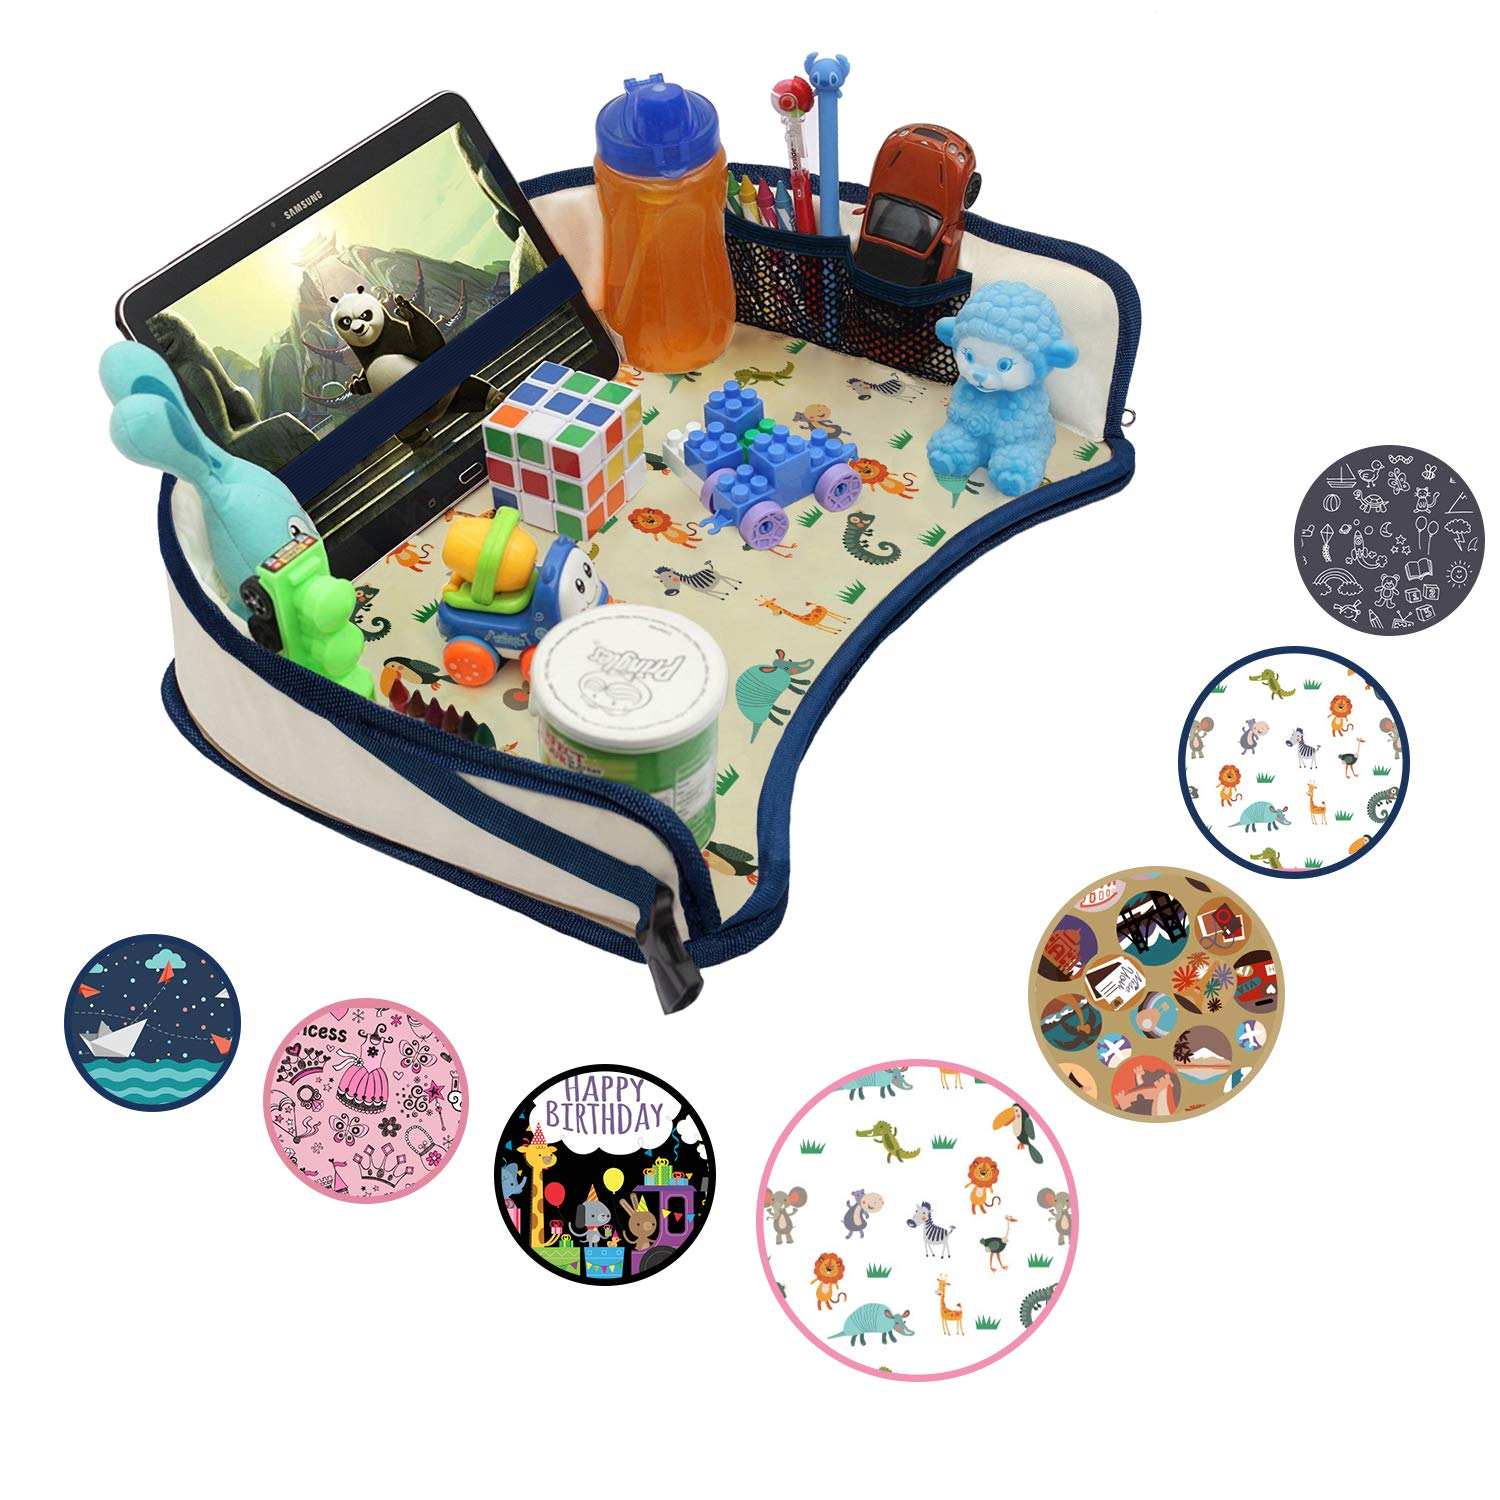 Sturdy Side Walls /& Padded Base Non-Flimsy Play Learn /& Organize Lap Desk for Car Seats Waterproof Snack Strollers /& Air Travel DMoose Kids Travel Activity Tray Strong Buckles Tablet Holder